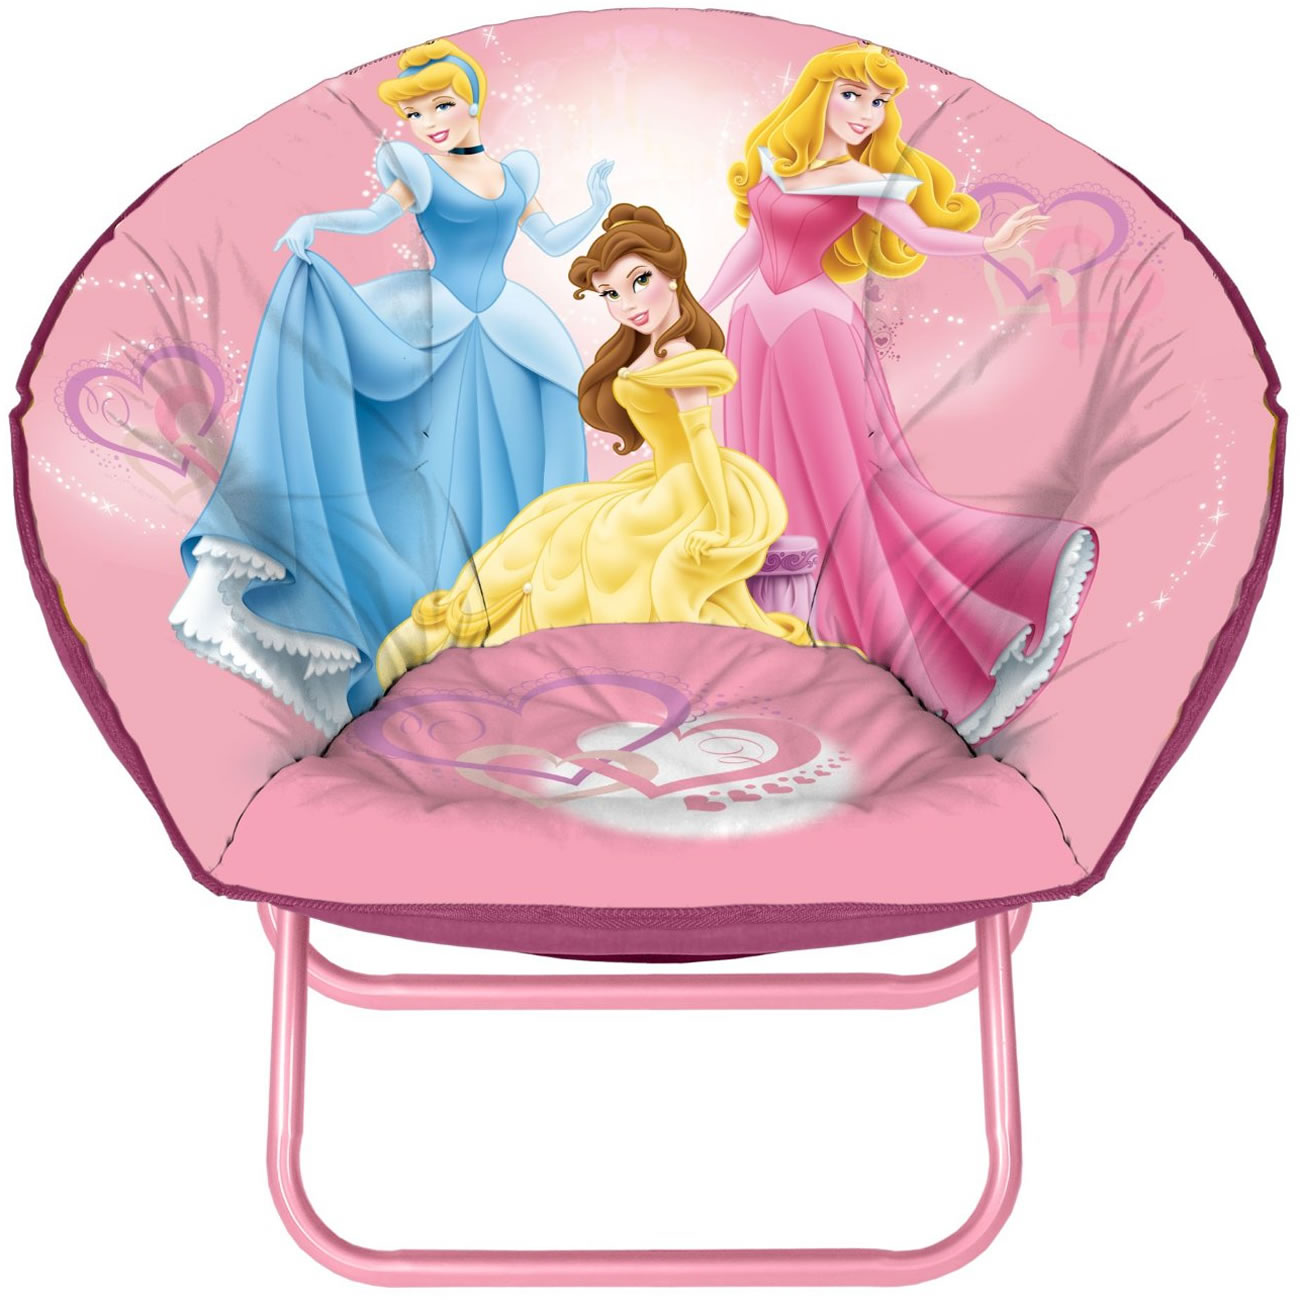 Disney Princess Toddler Saucer Chair